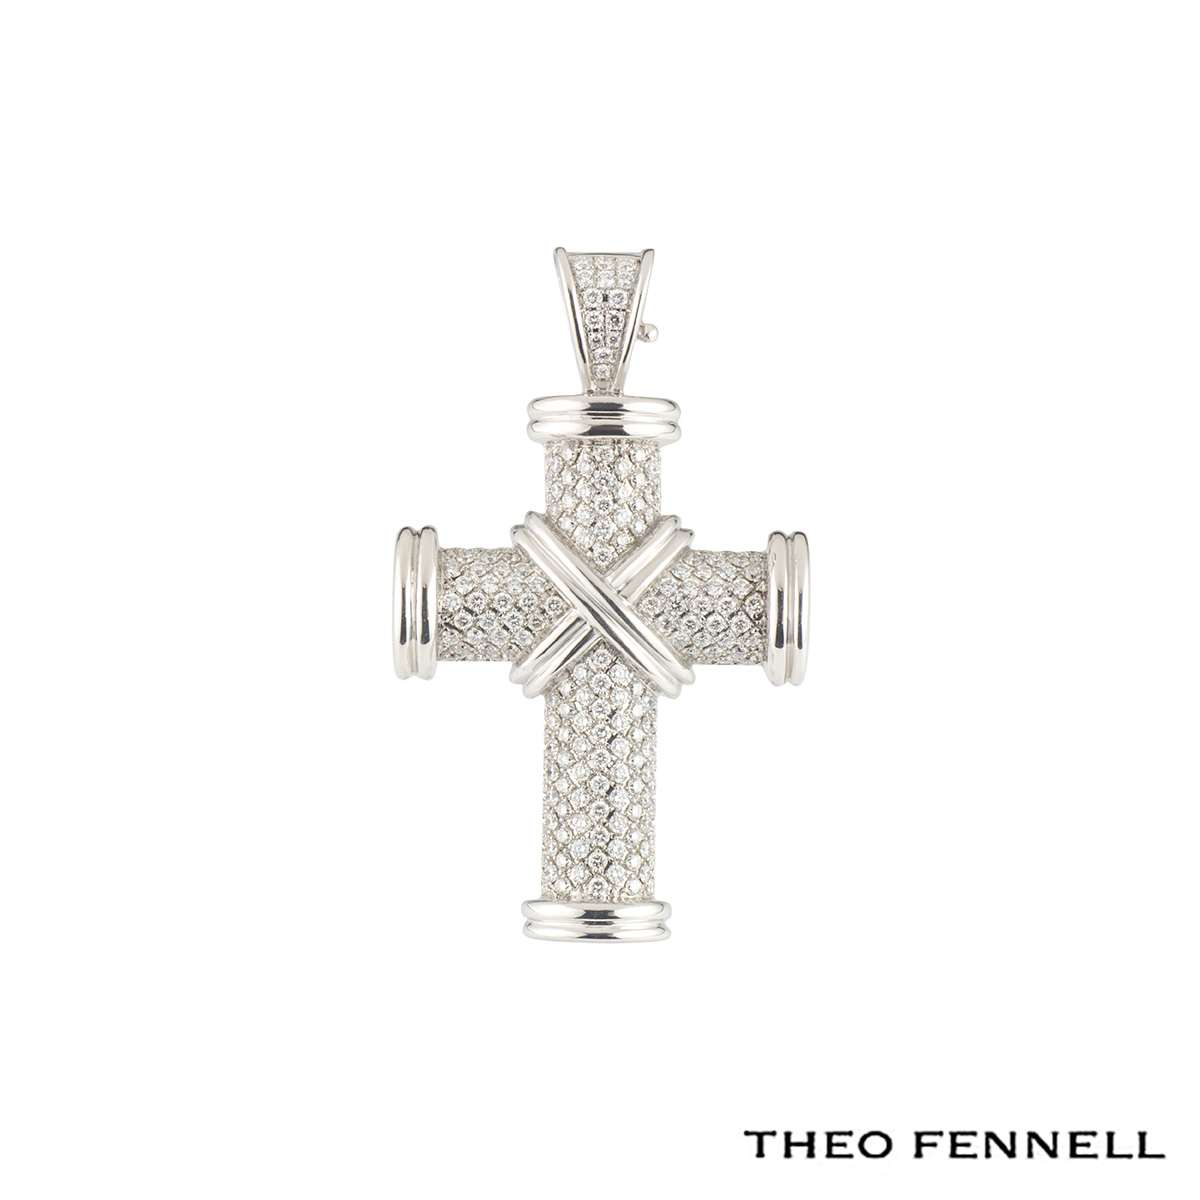 Theo Fennell White Gold Diamond Crosses Pendant 1.28ct G/VS